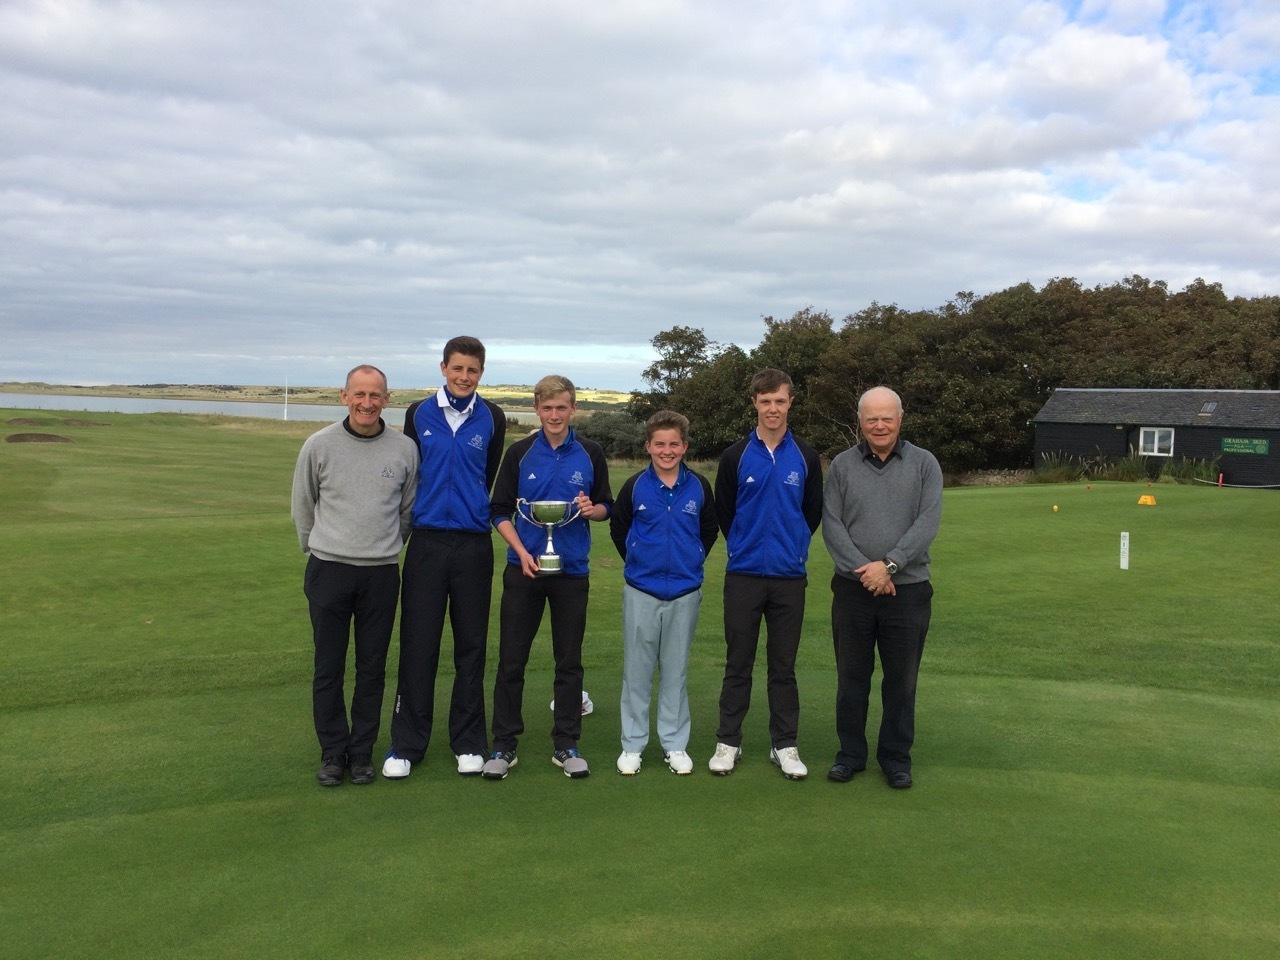 Pictured are, L-R, Martin Black, Junior Convenor Gullane GC, the winning Gullane Team of James Chalmers, William Ladbrooke, Liam Currid, and Darren Howie, and David Warren, League Secretary.